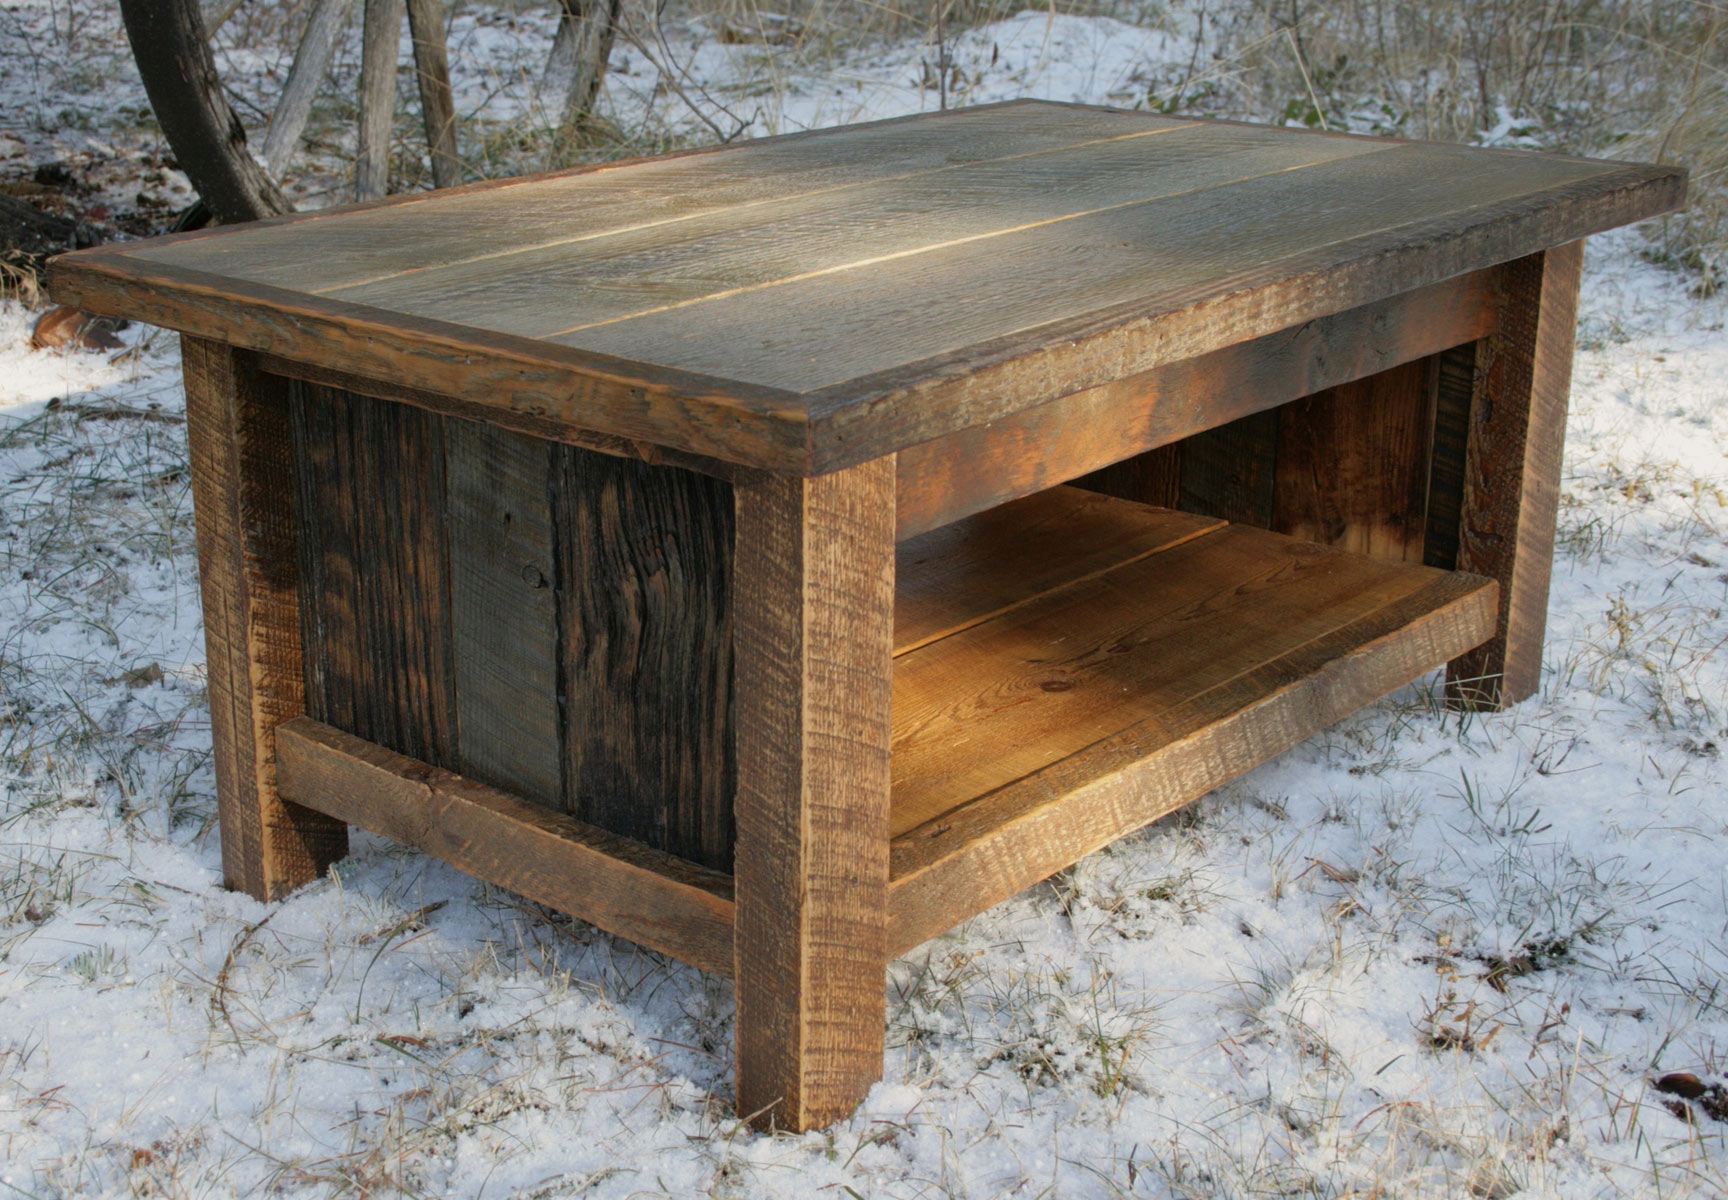 Cherry Wood Coffee Table With Glass Top Designs